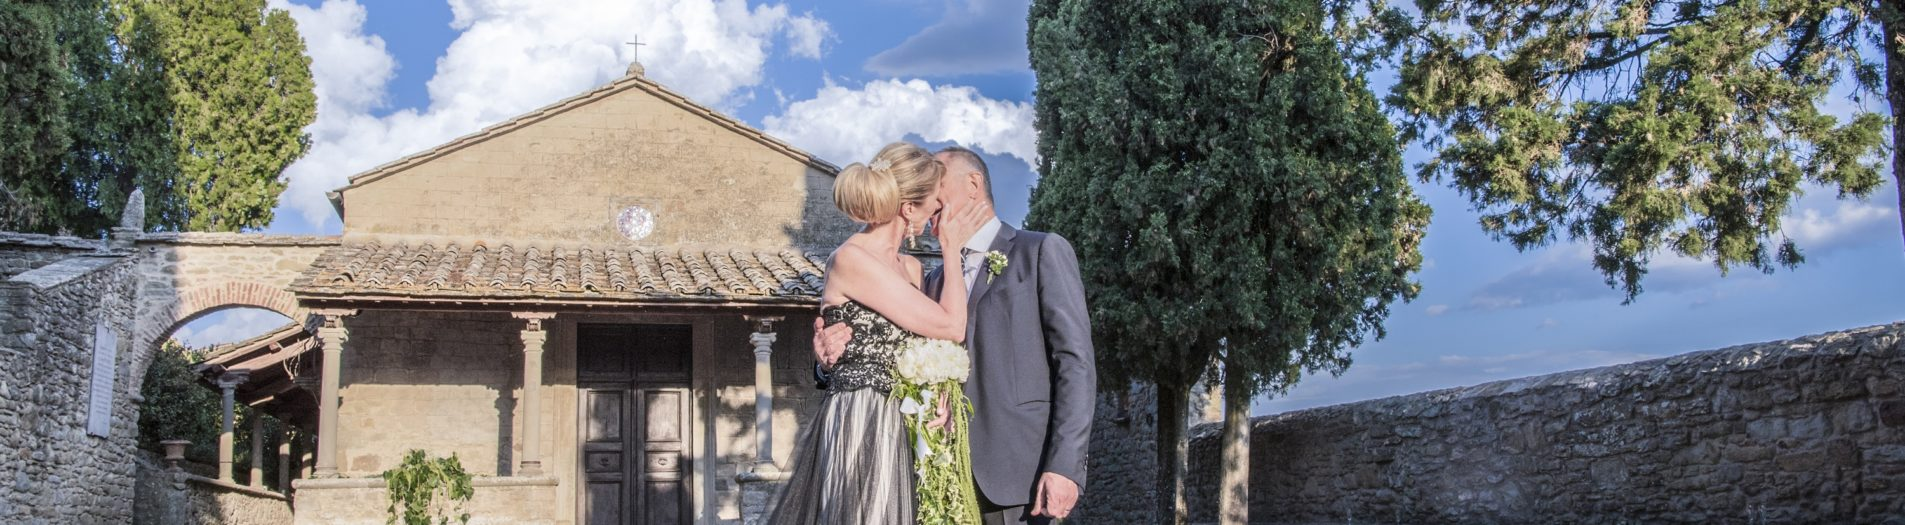 Wedding at  Relais Villa Petrischio in Cortona